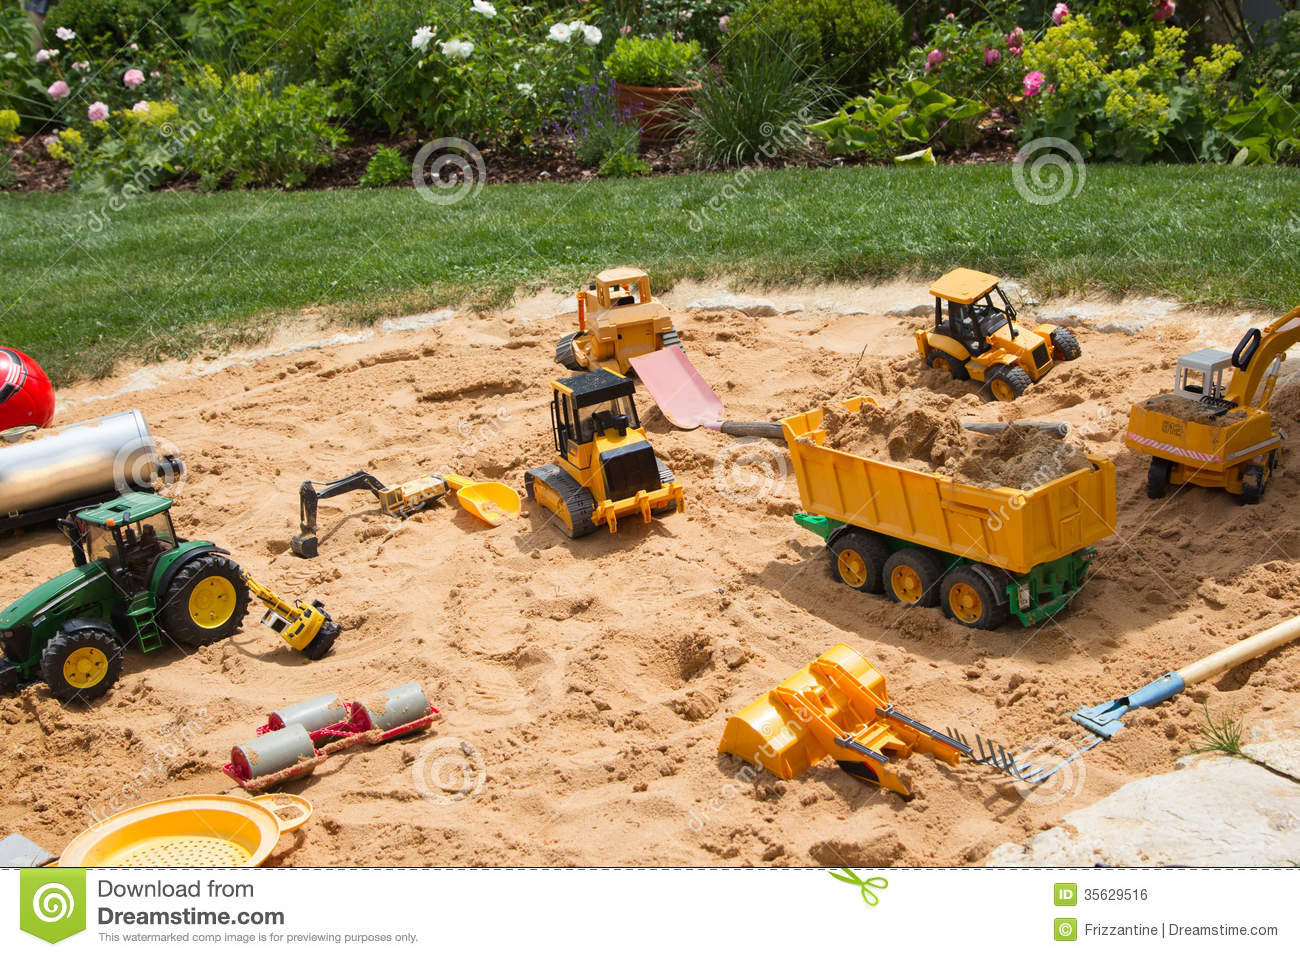 Sandpit In A Garden With Different Sand Play Things